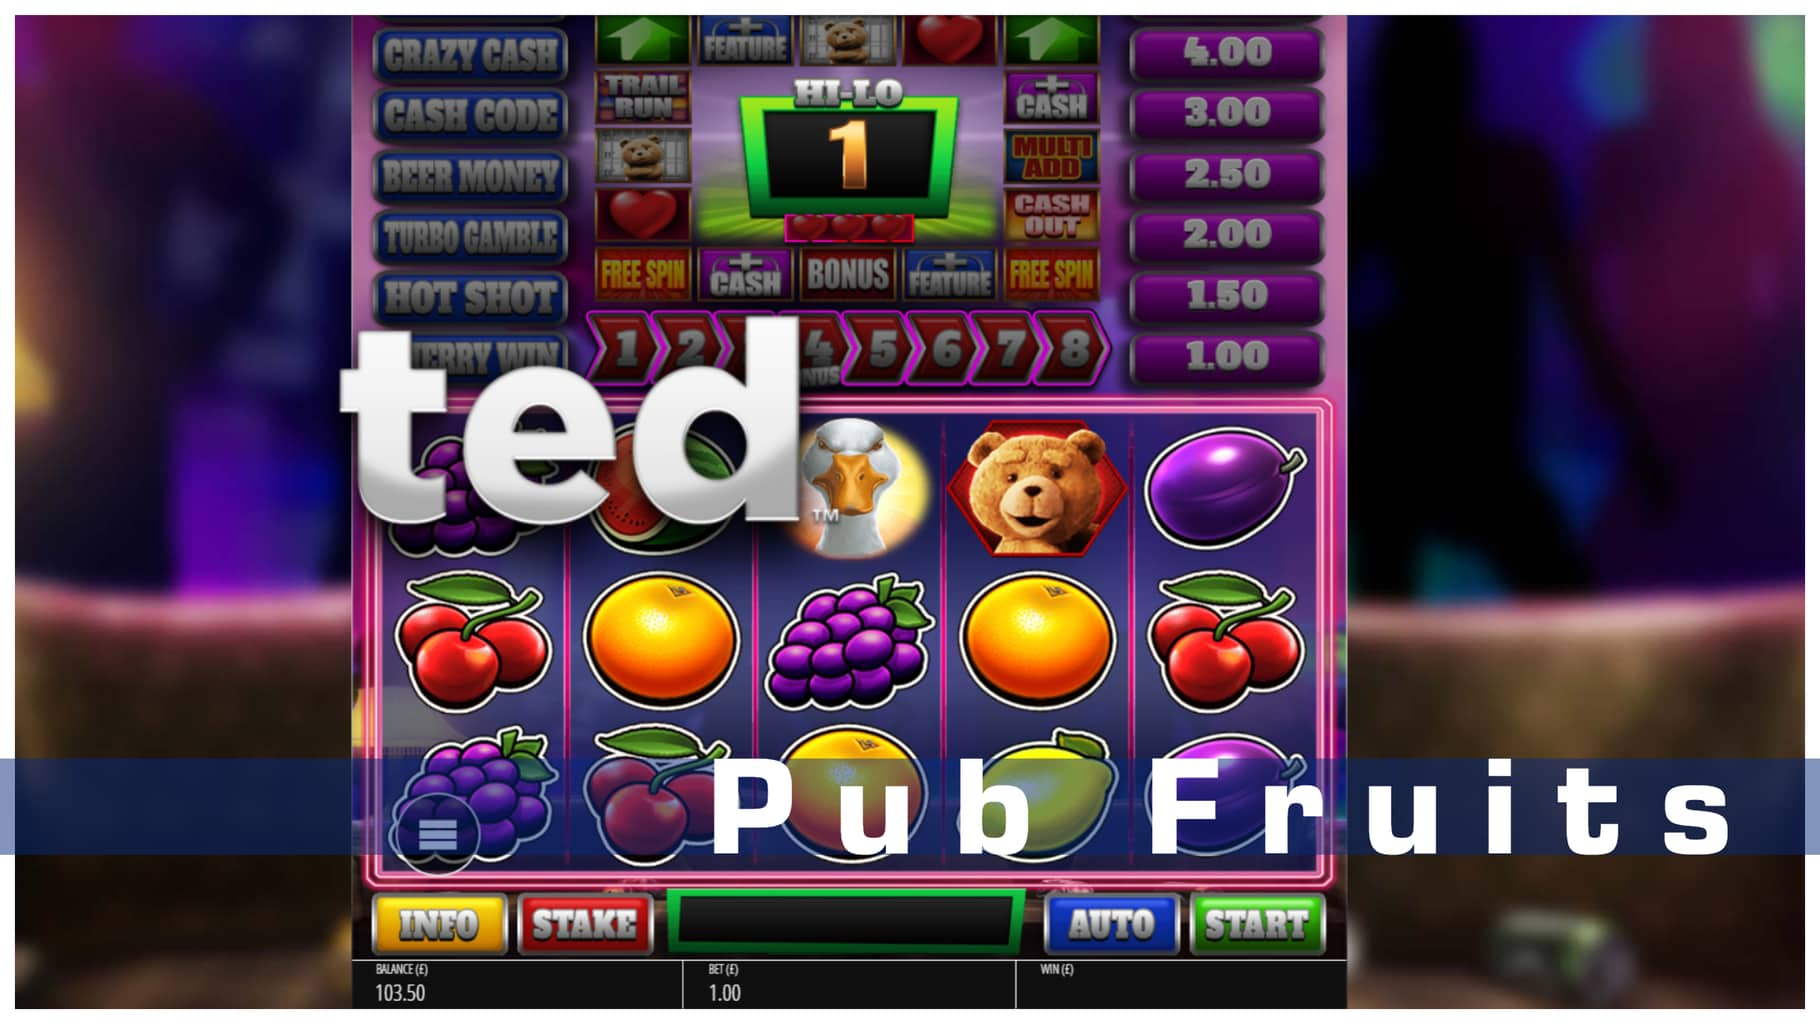 Ted Pub Fruits announced